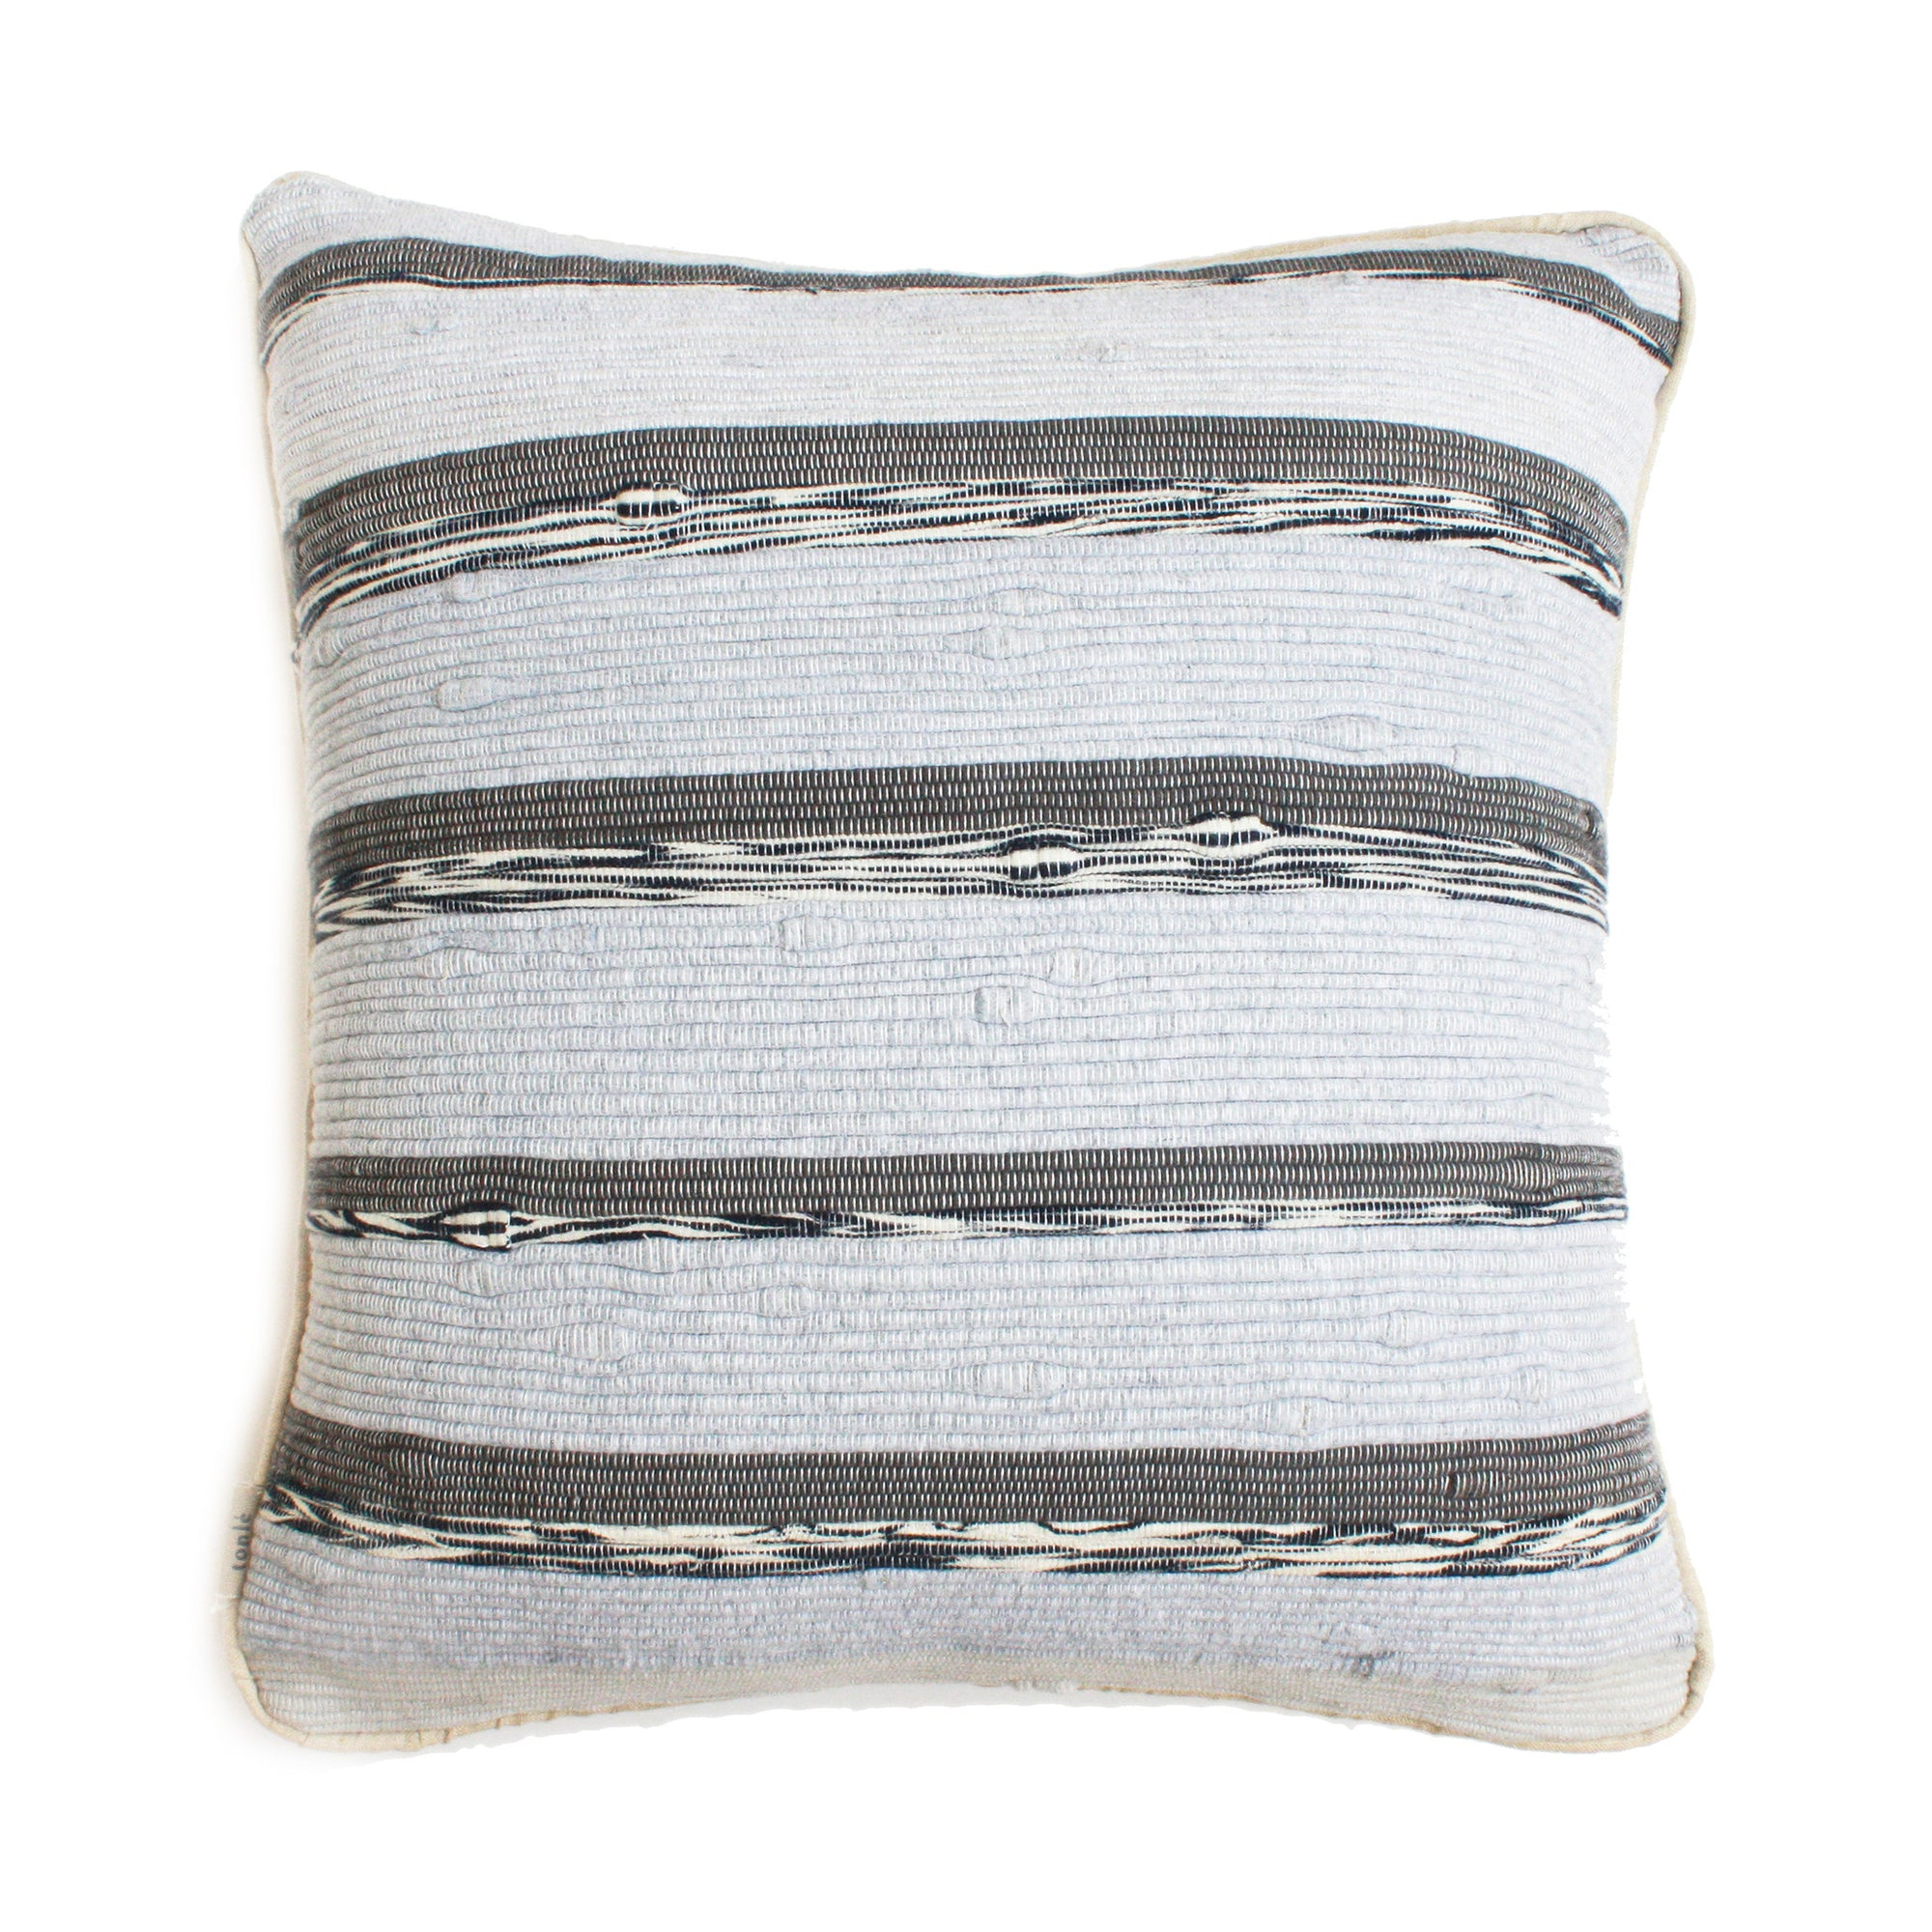 tonlé Takeo Pillow Cover - Pebble